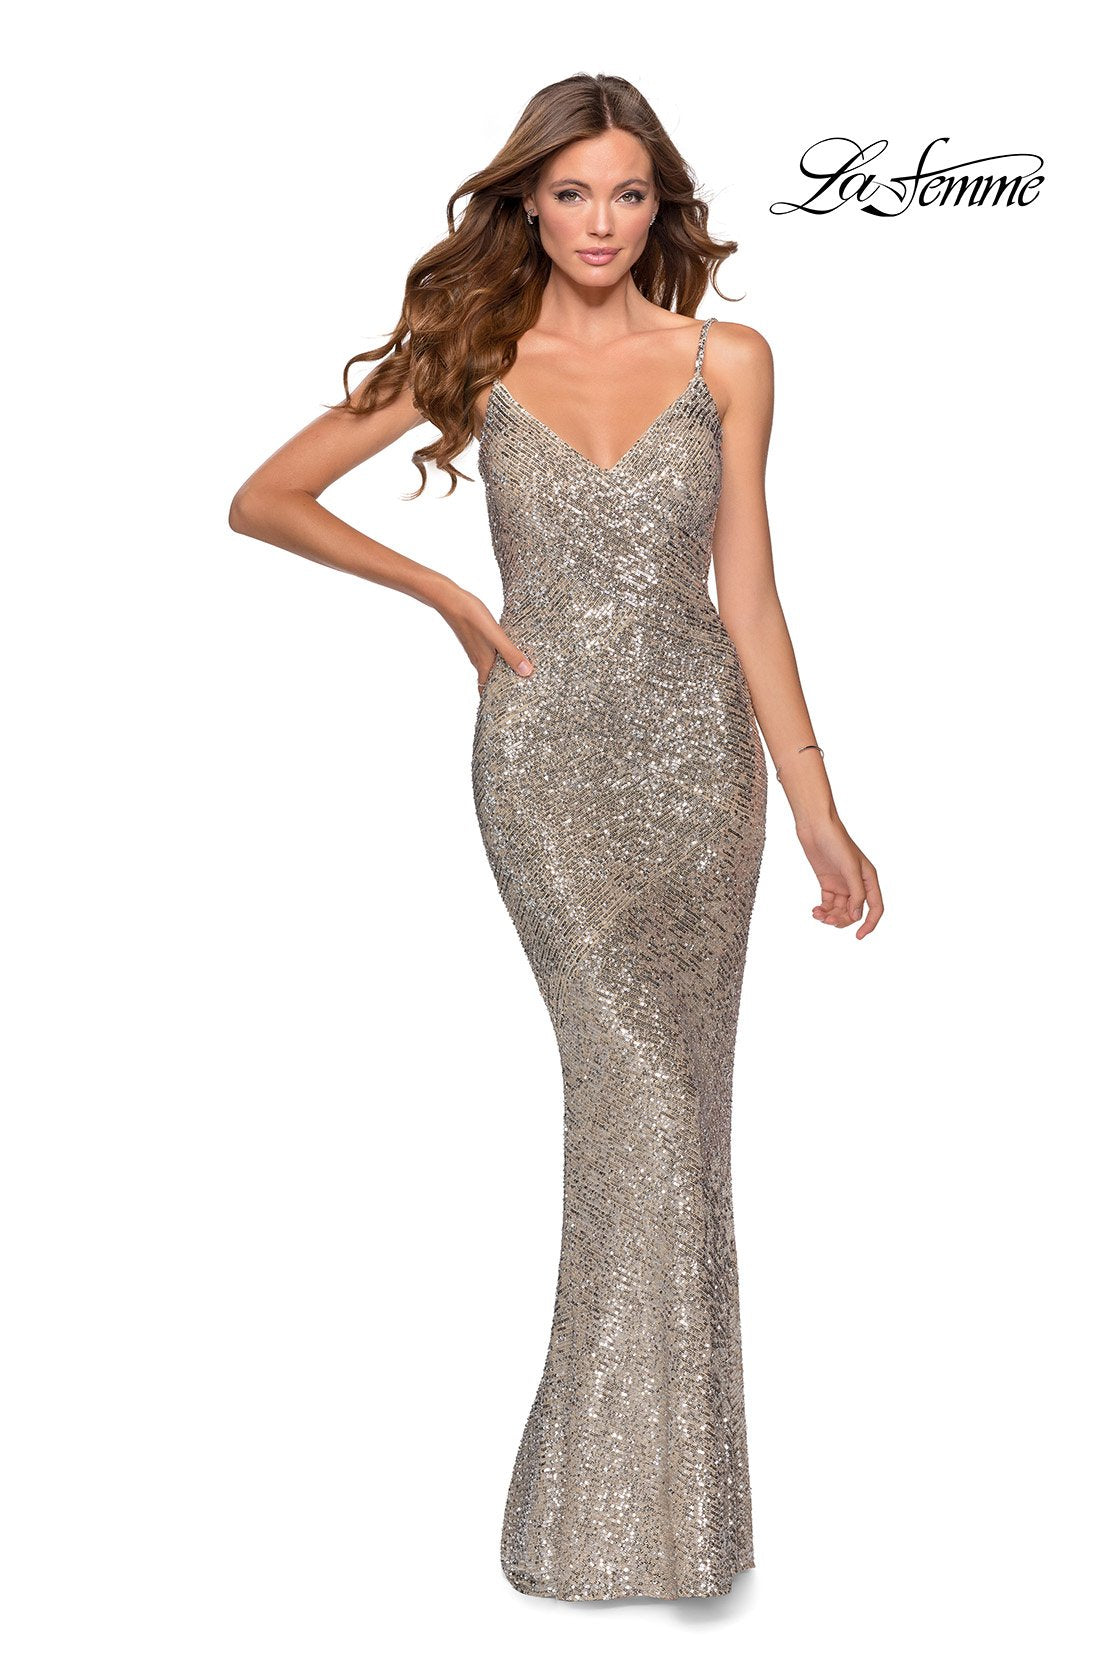 La Femme 28657 comes in the following colors: Silver. $398 is the Formal Approach best price guarantee